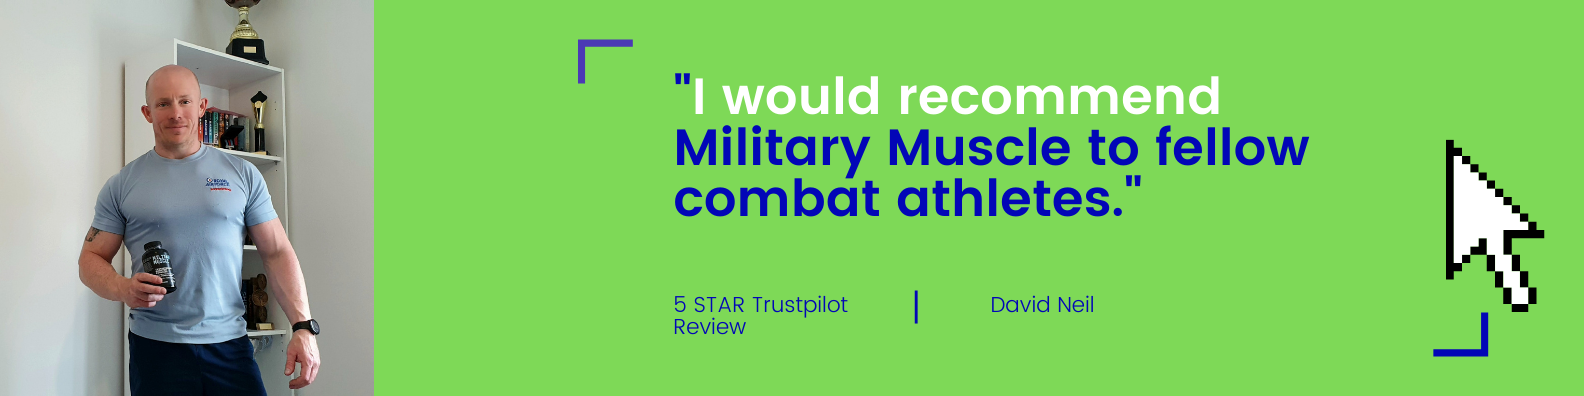 military muscle test booster trustpilot review